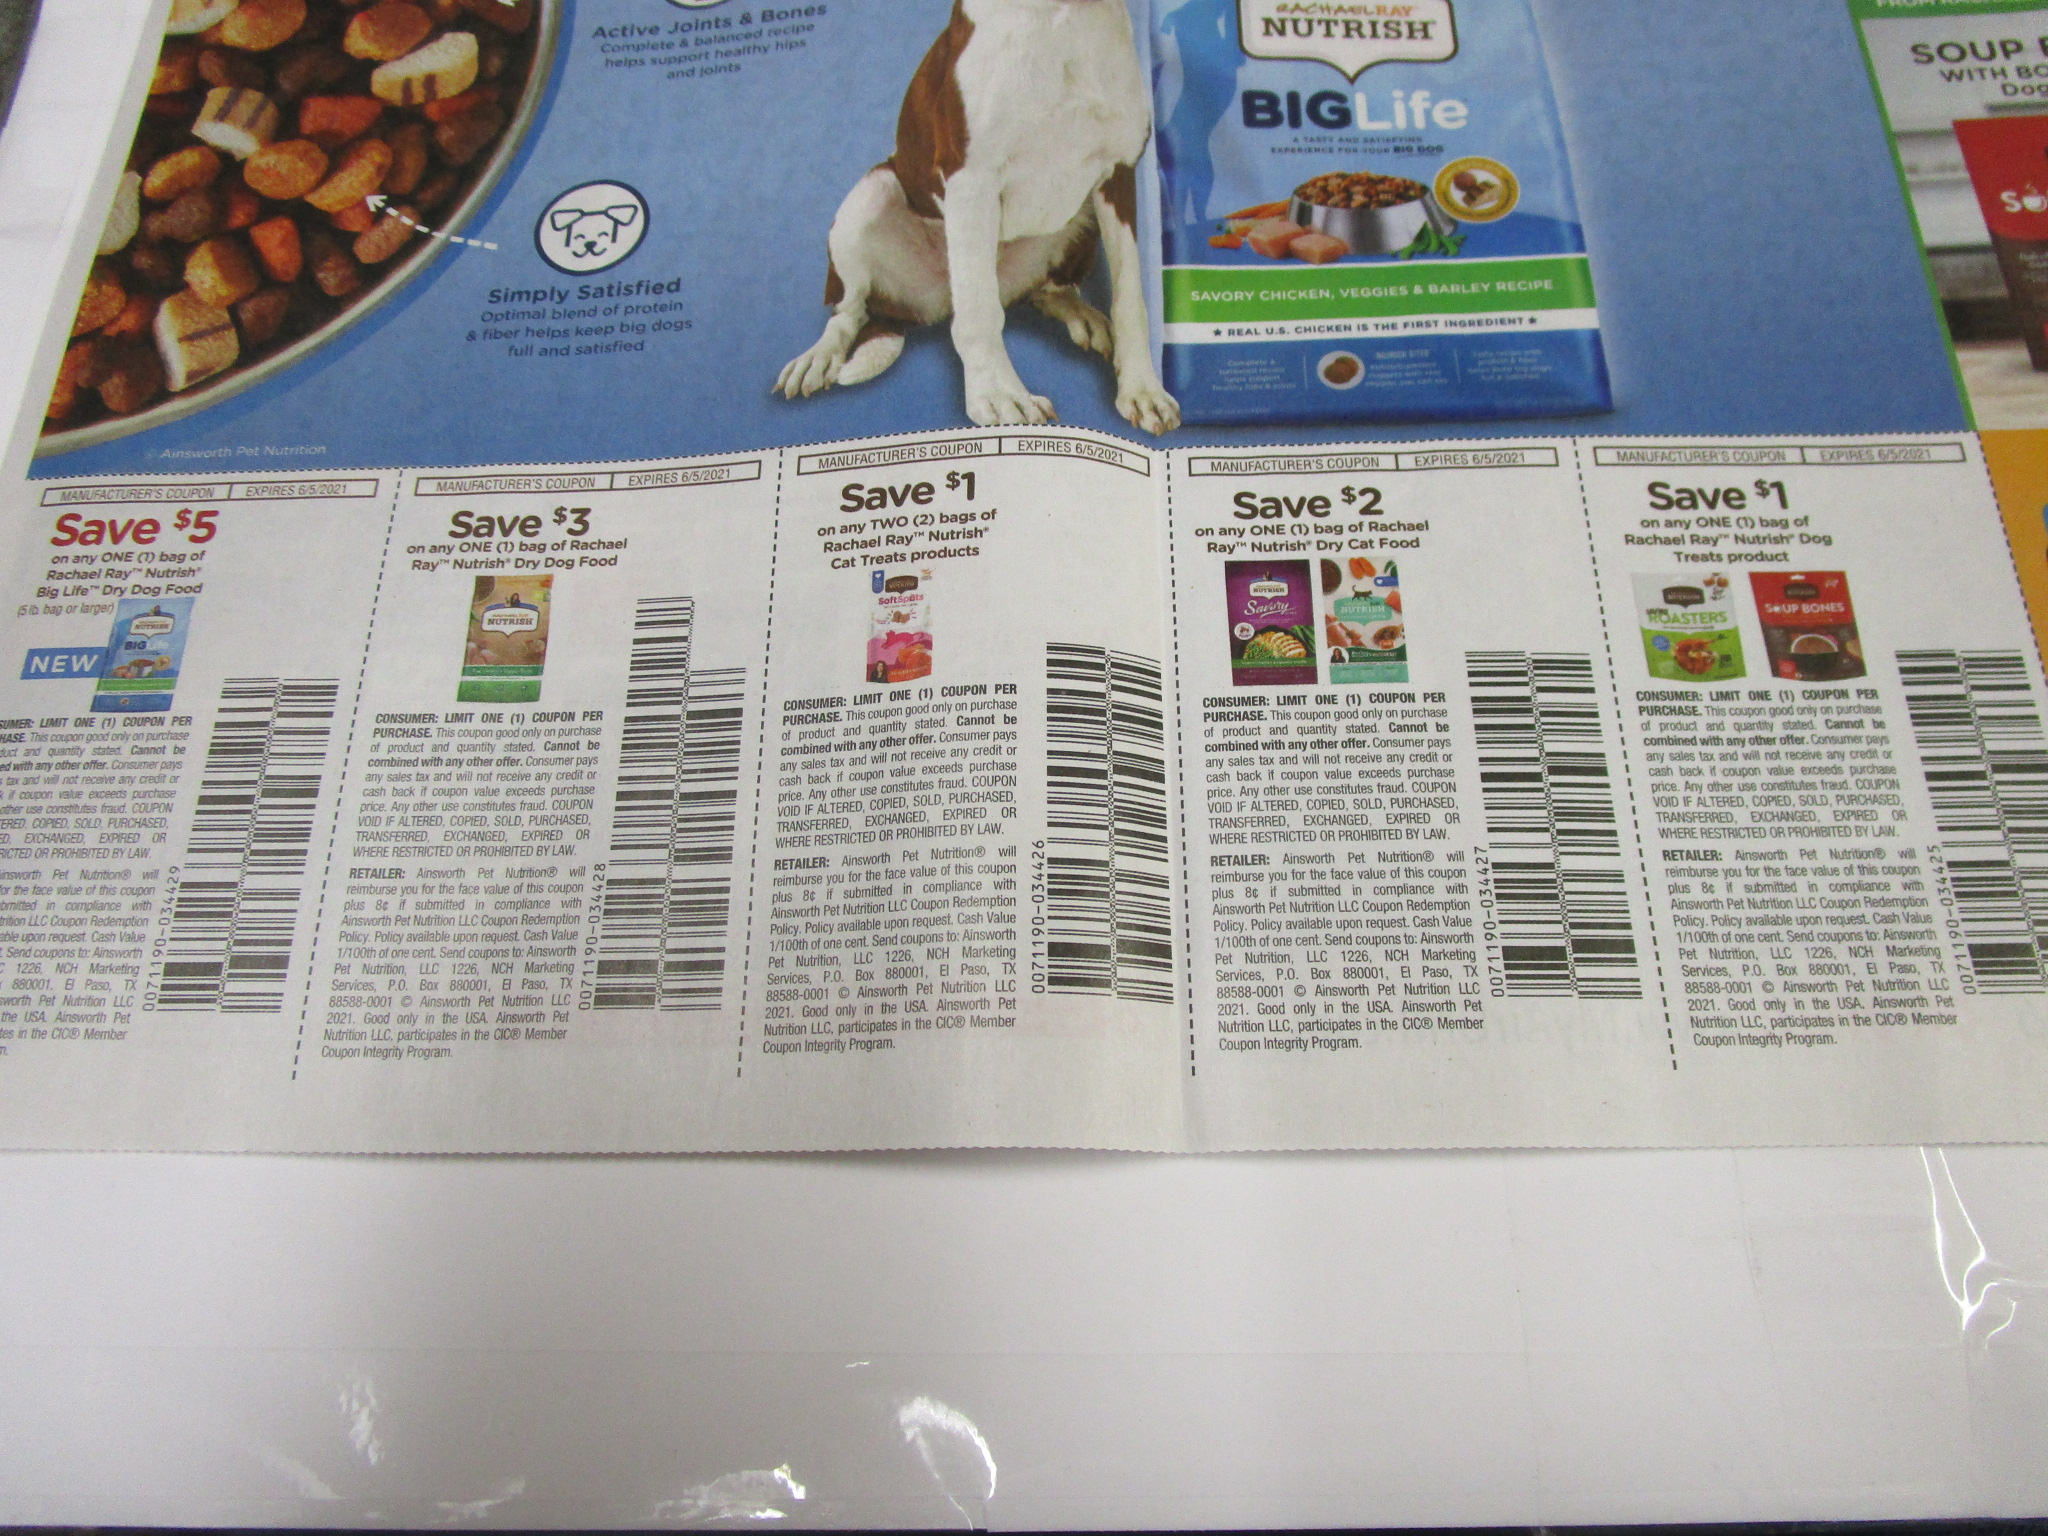 15 Coupons $5/1 Rachael Ray Nutrish Big Life Dog Food  + $3/1 Nutrish Dry Dog Food  + $1/2 Nutrish Cat Treats + $2/1 Nutrish Dry Cat Food  + $1/1 Nutrish Dog Treats 6/5/2021